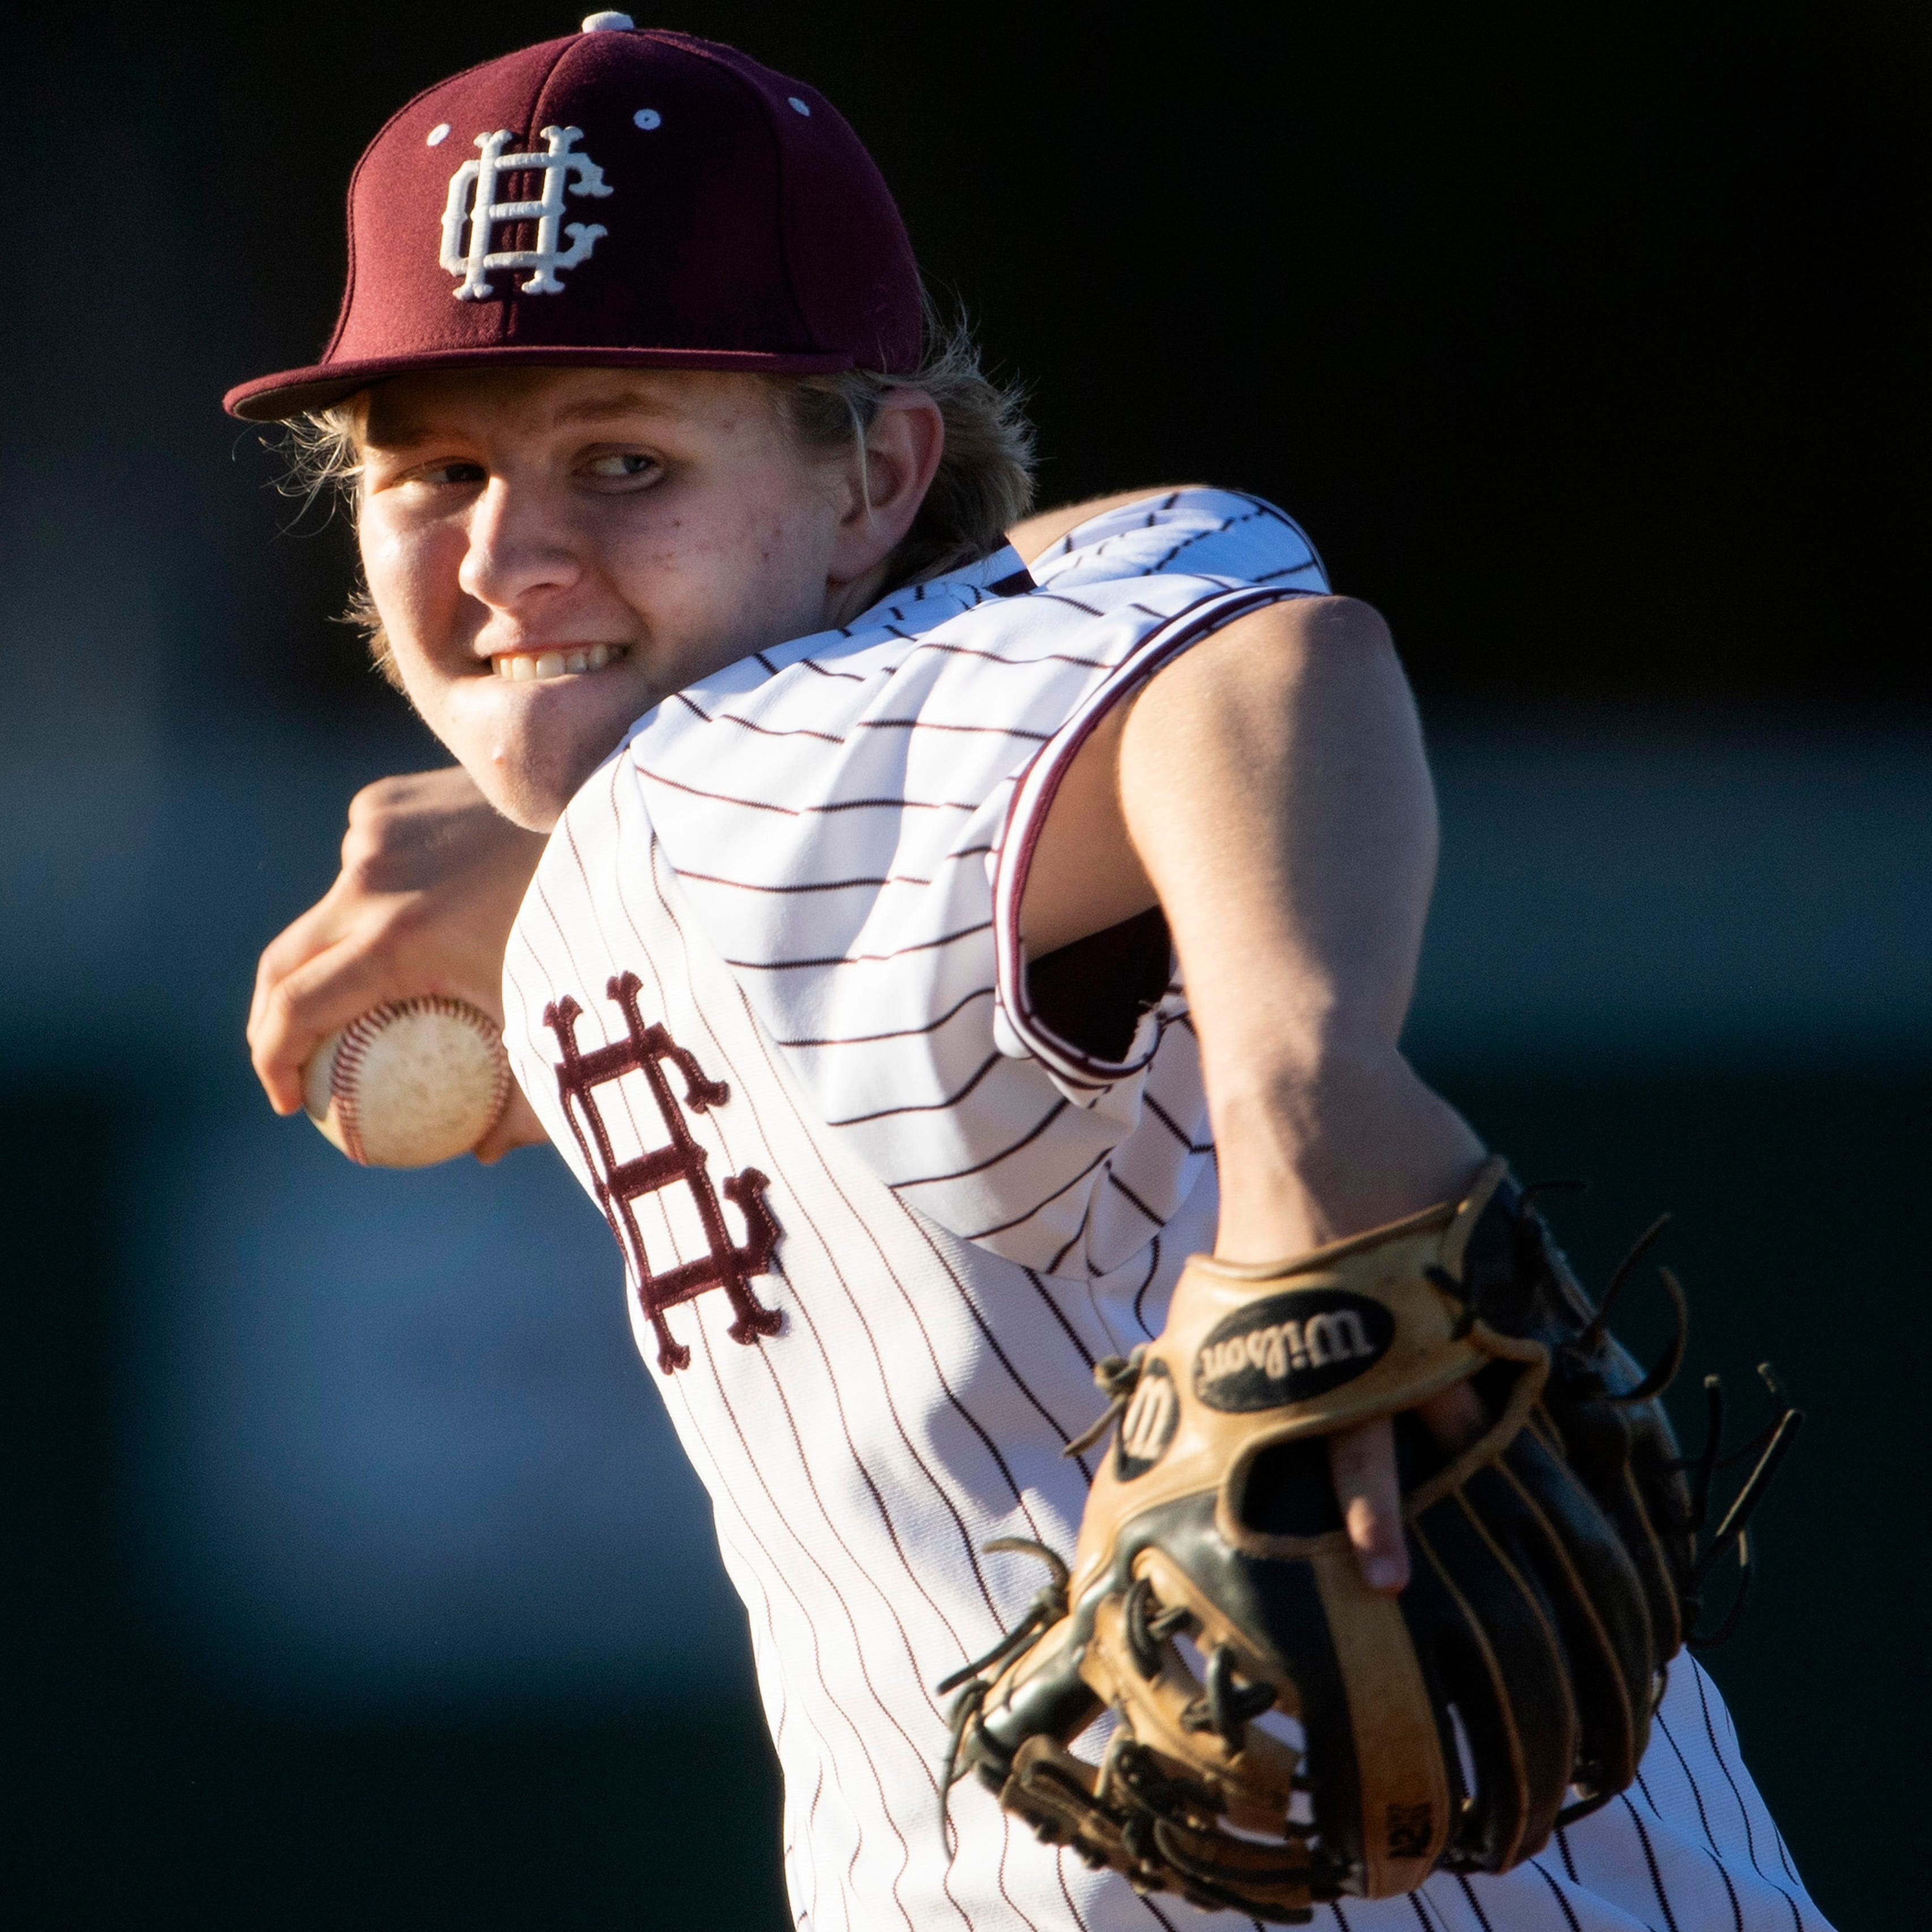 Nick Wimber manufactures game's only run in Henderson's 1-0 win over Union